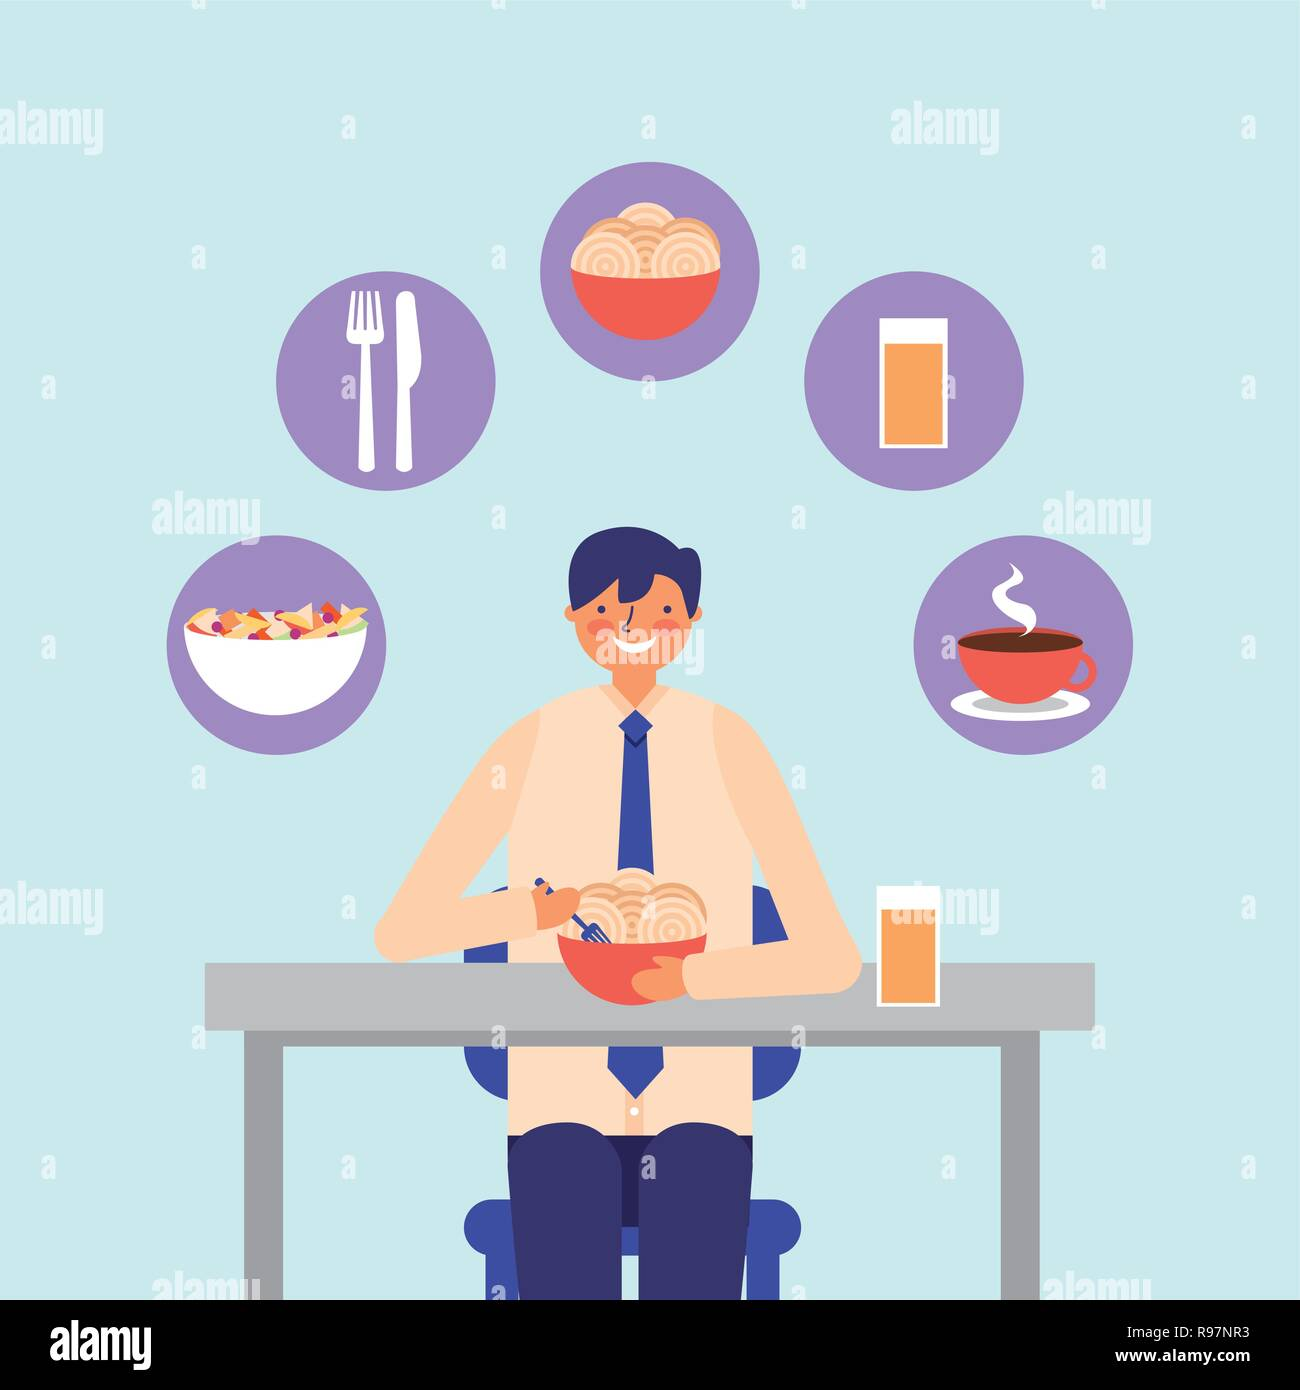 daily activity businessman eating lunch vector illustration - Stock Vector